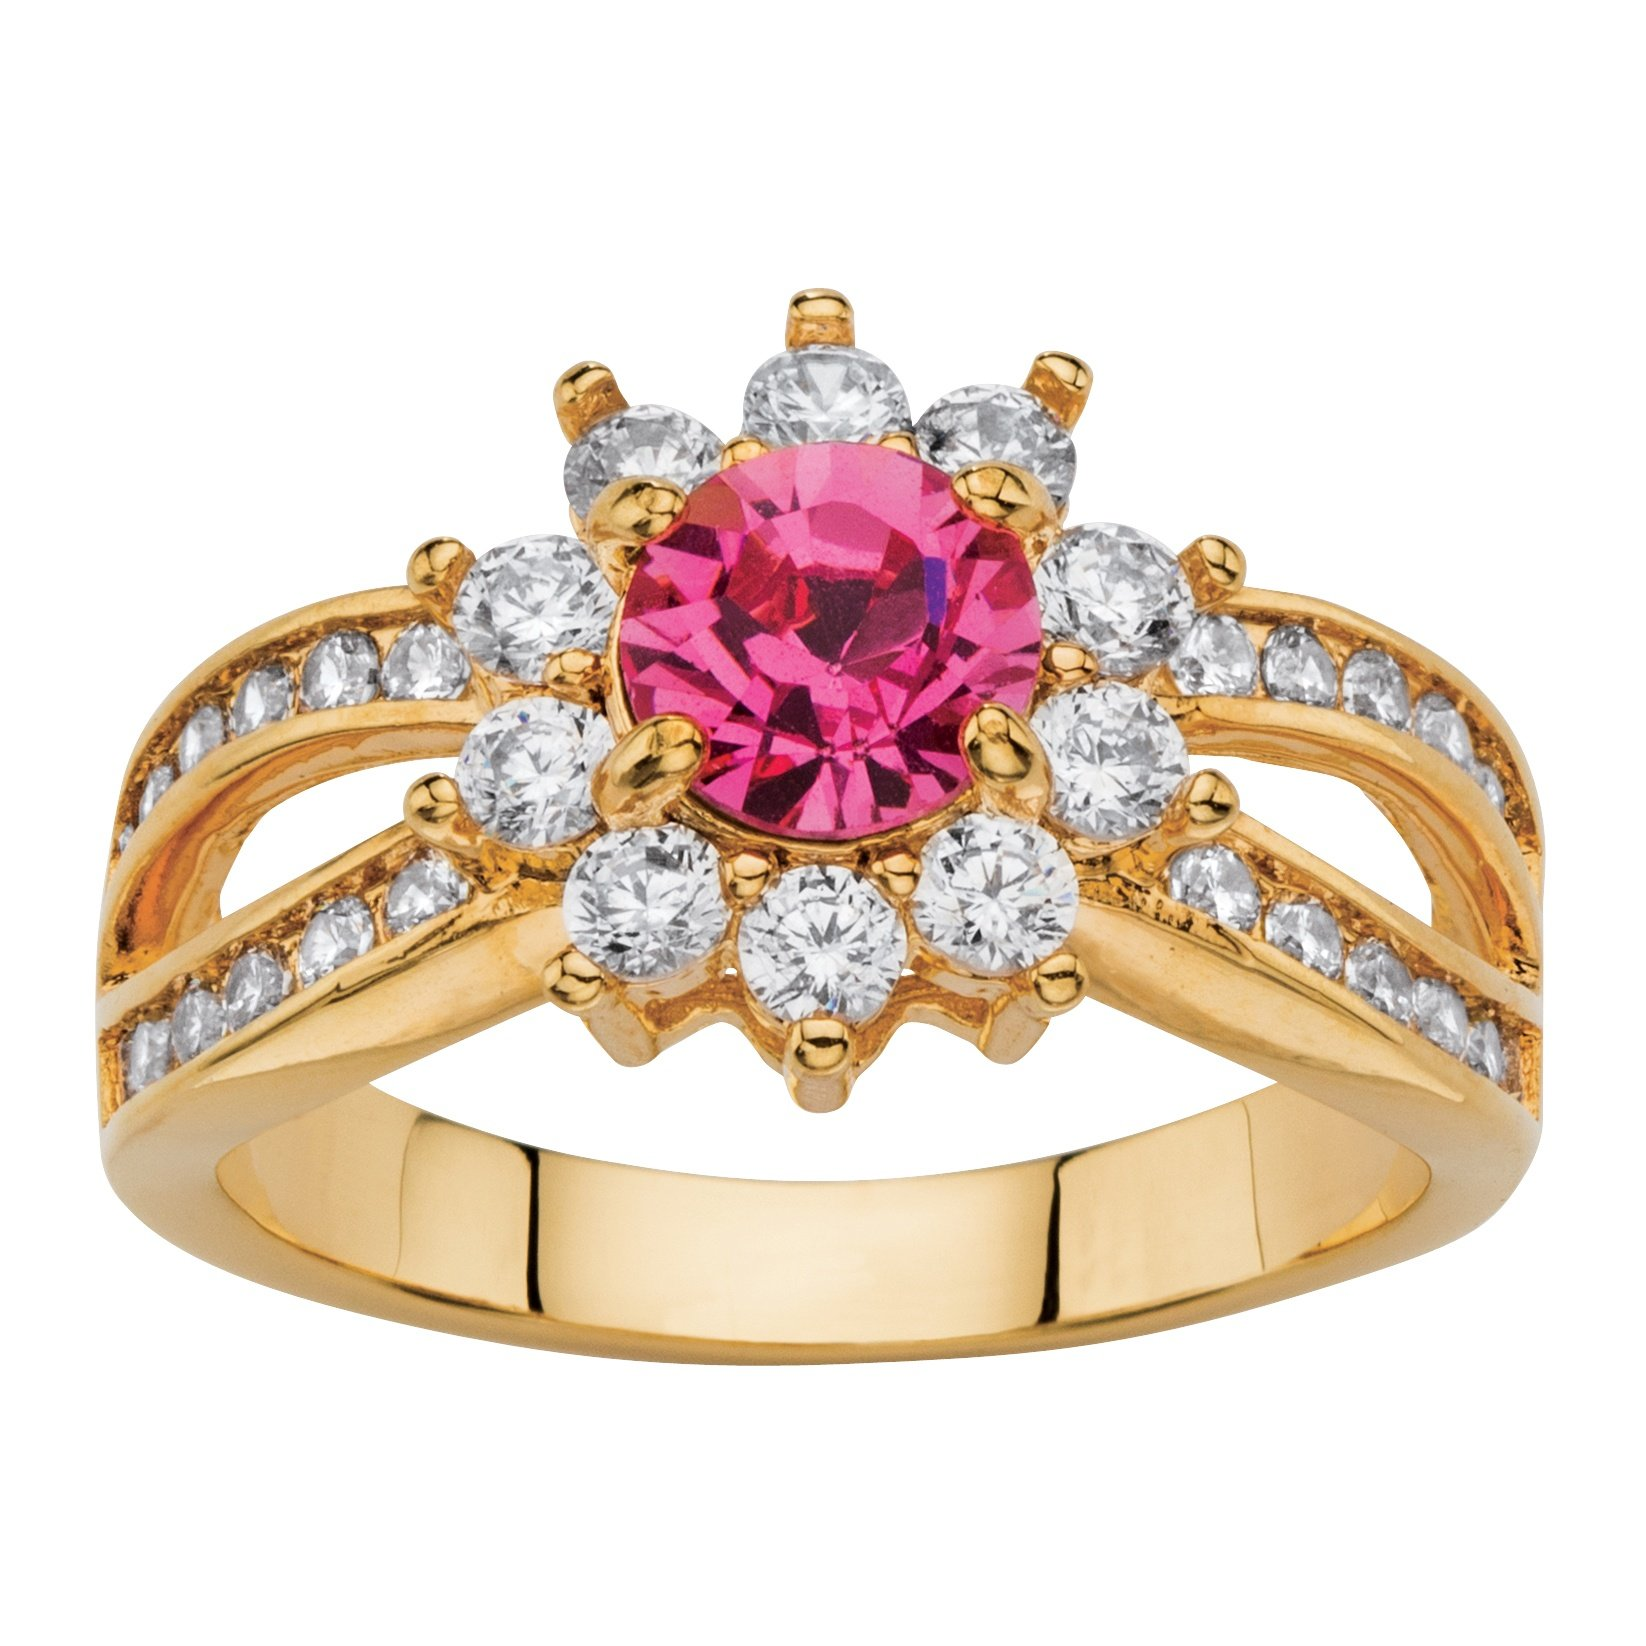 Palm Beach Jewelry Round Rose Simulated Crystal CZ 14k Gold-Plated Halo Cocktail Ring Size 10